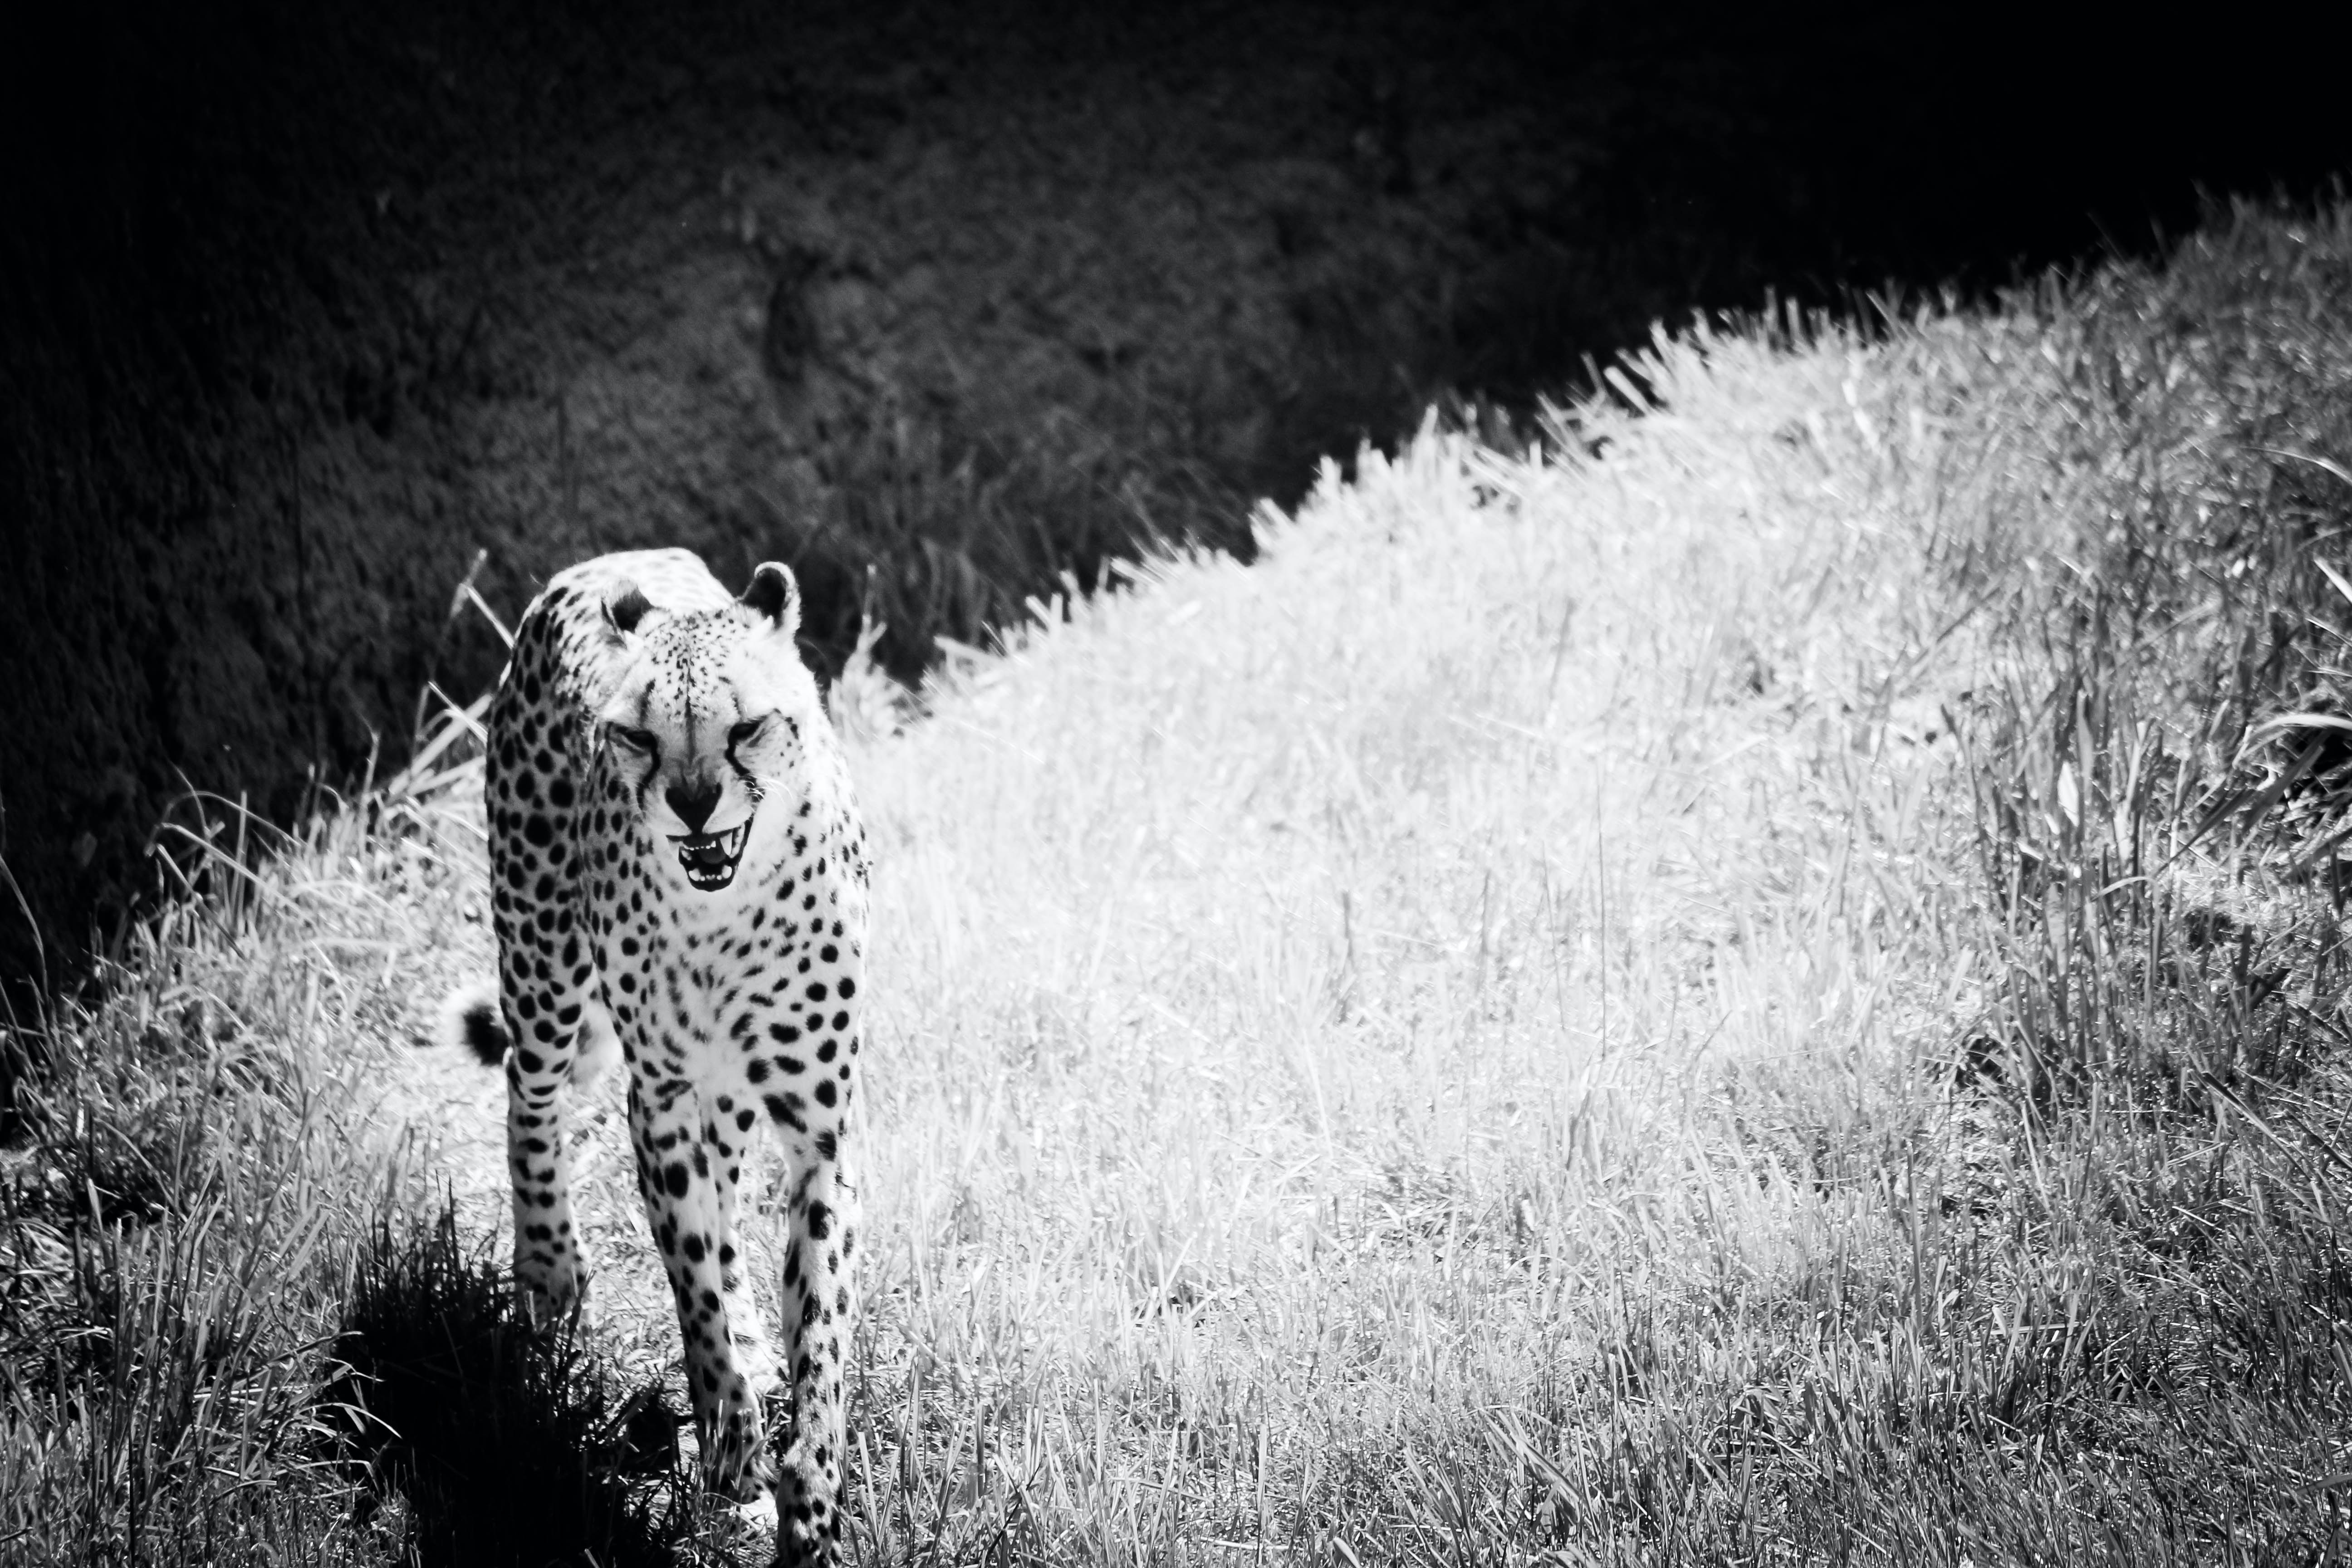 Black and white photo of cheetah moving through grass